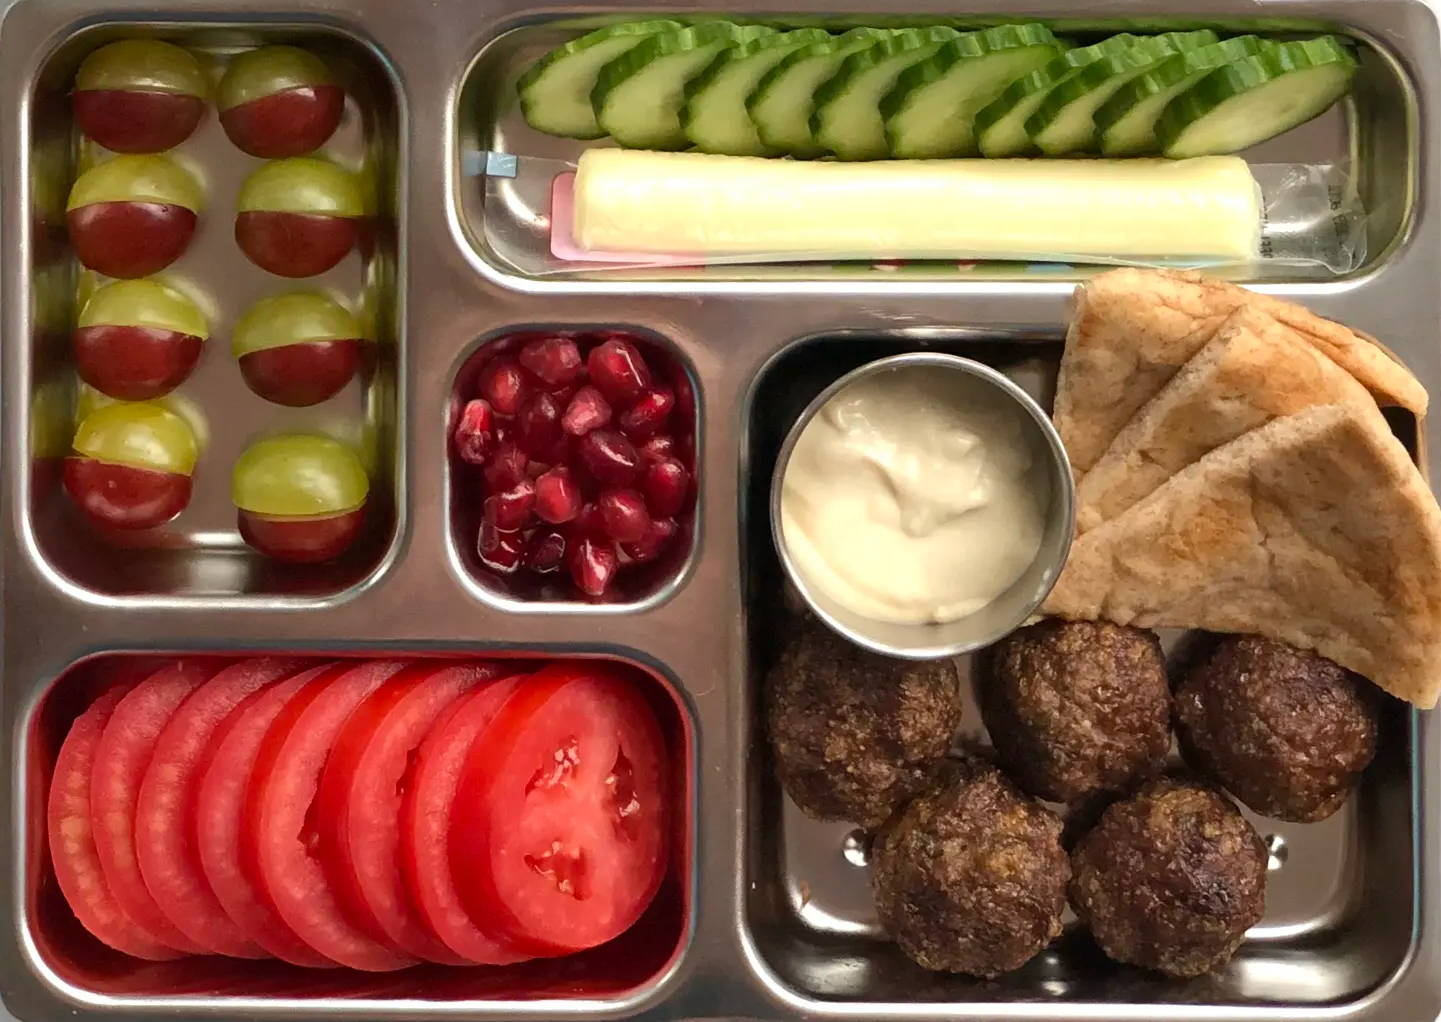 Sneak peek of a kid's quick and healthy school lunch containing  Beef Meatballs with Hummus & Pita, Sliced Tomatoes & Cucumbers, Cheese Stick, and Pomegranate Seeds.